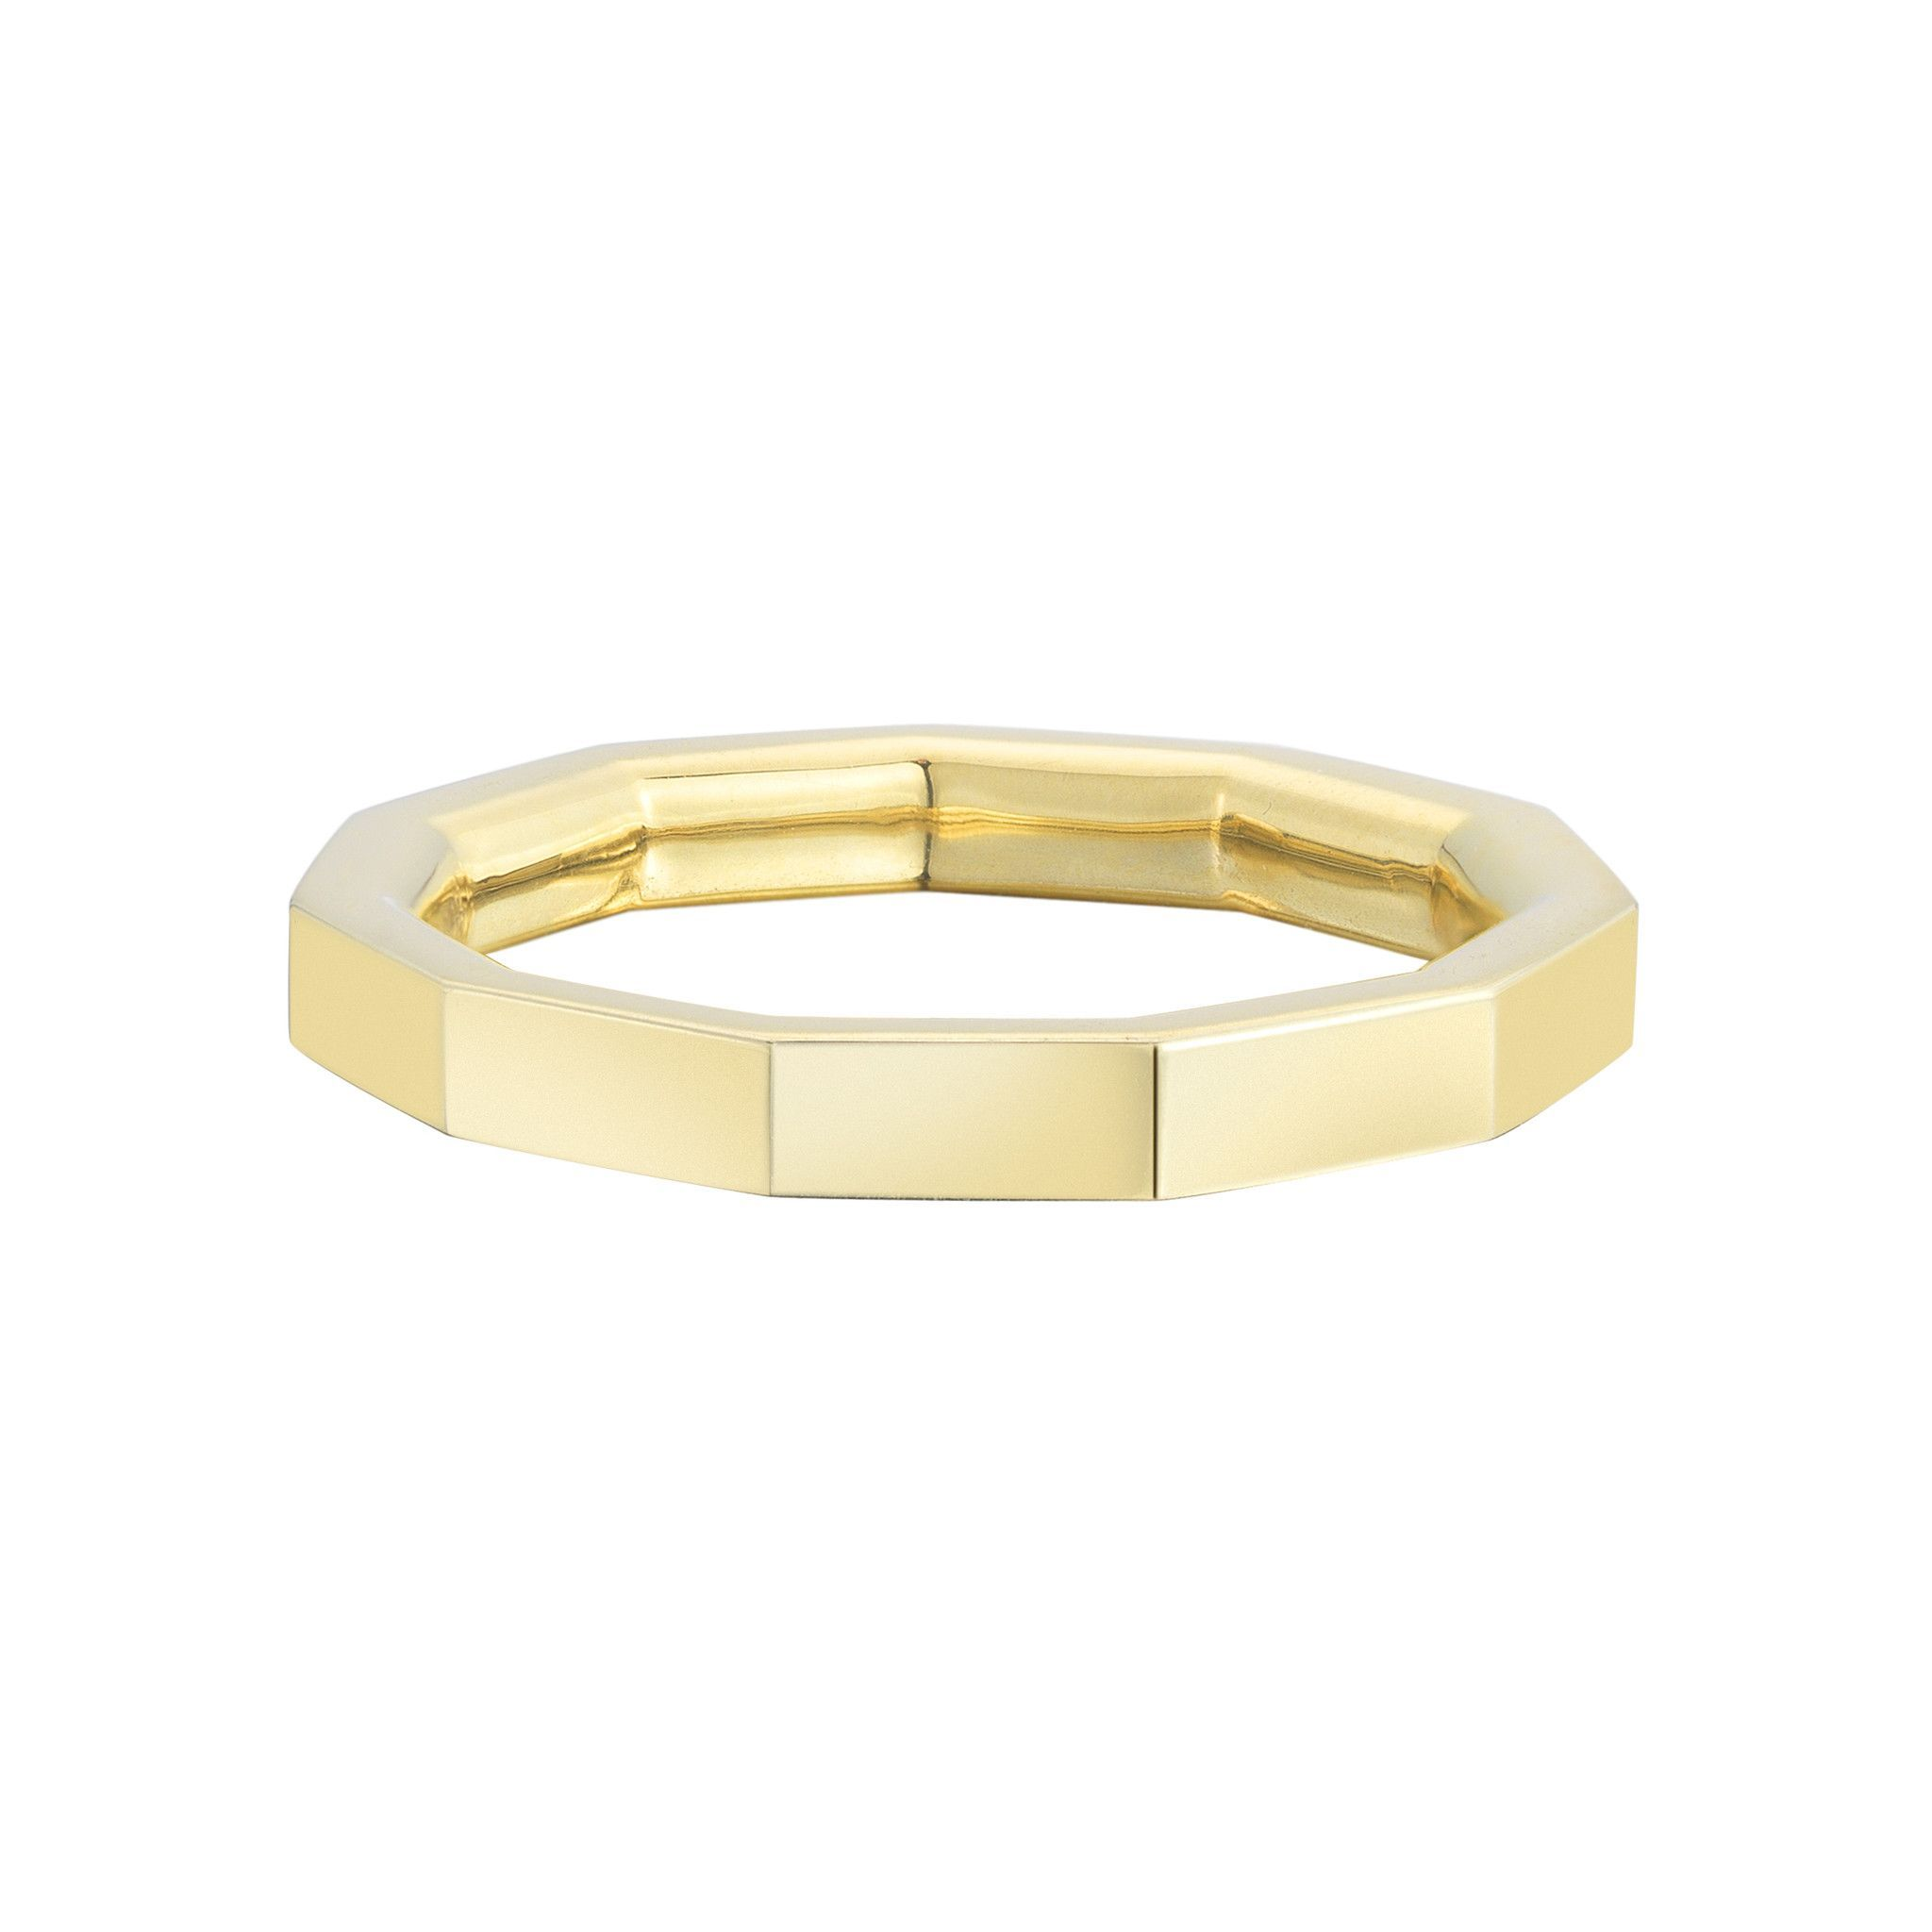 samojauskaite product gold simona vestuvinis en ziedas jewellery wedding bands